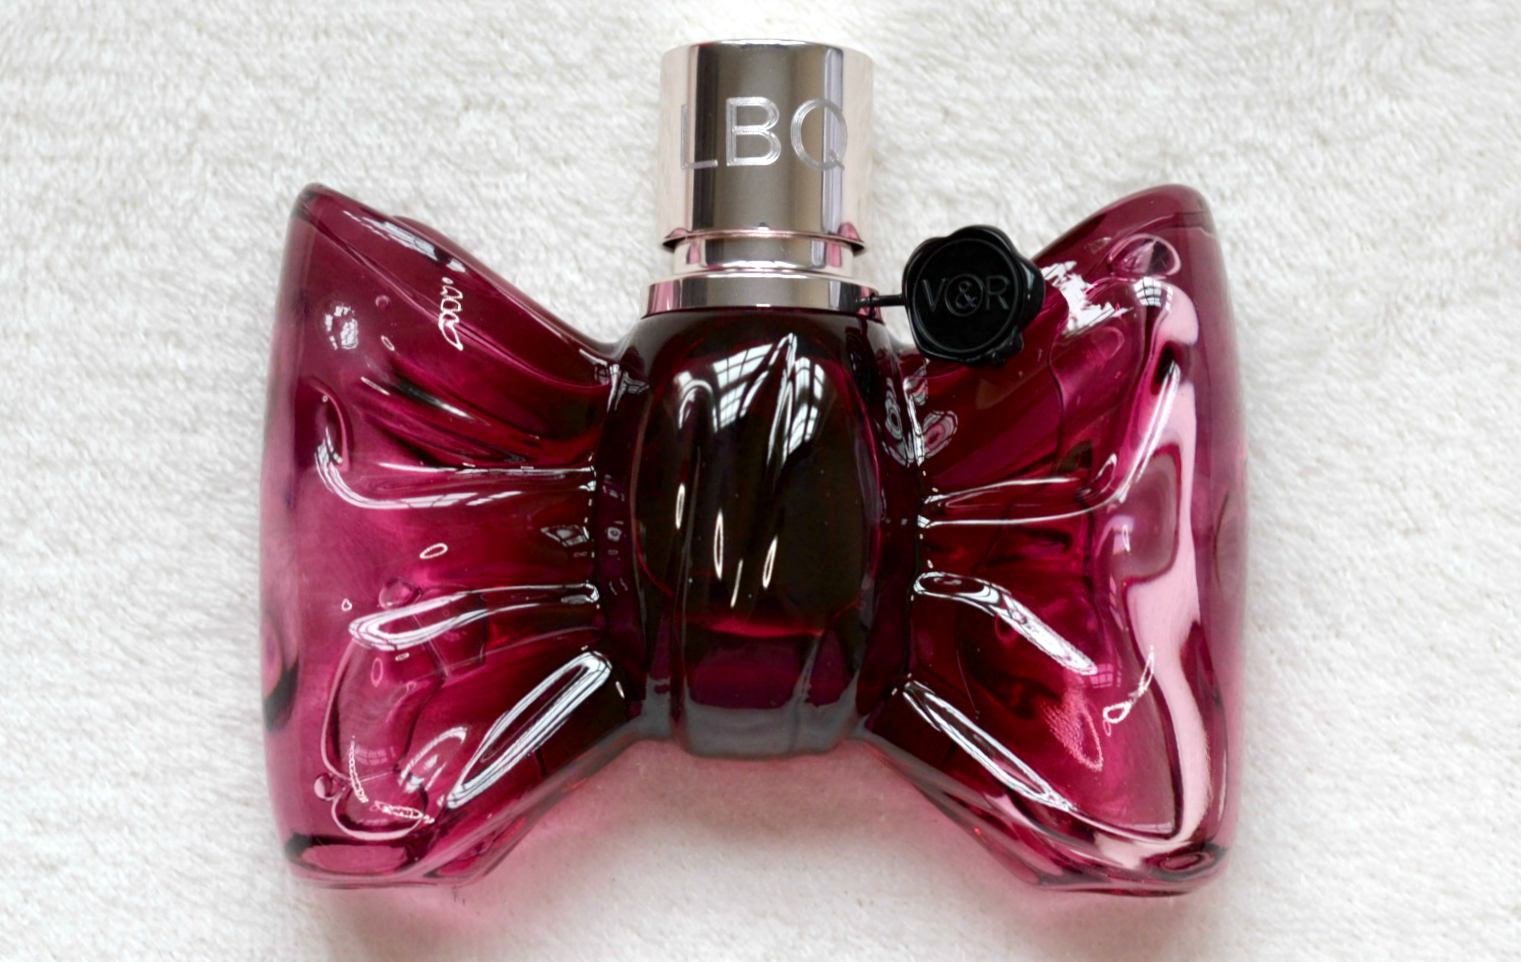 The New Fragrance From Viktor & Rolf Introducing BonBon